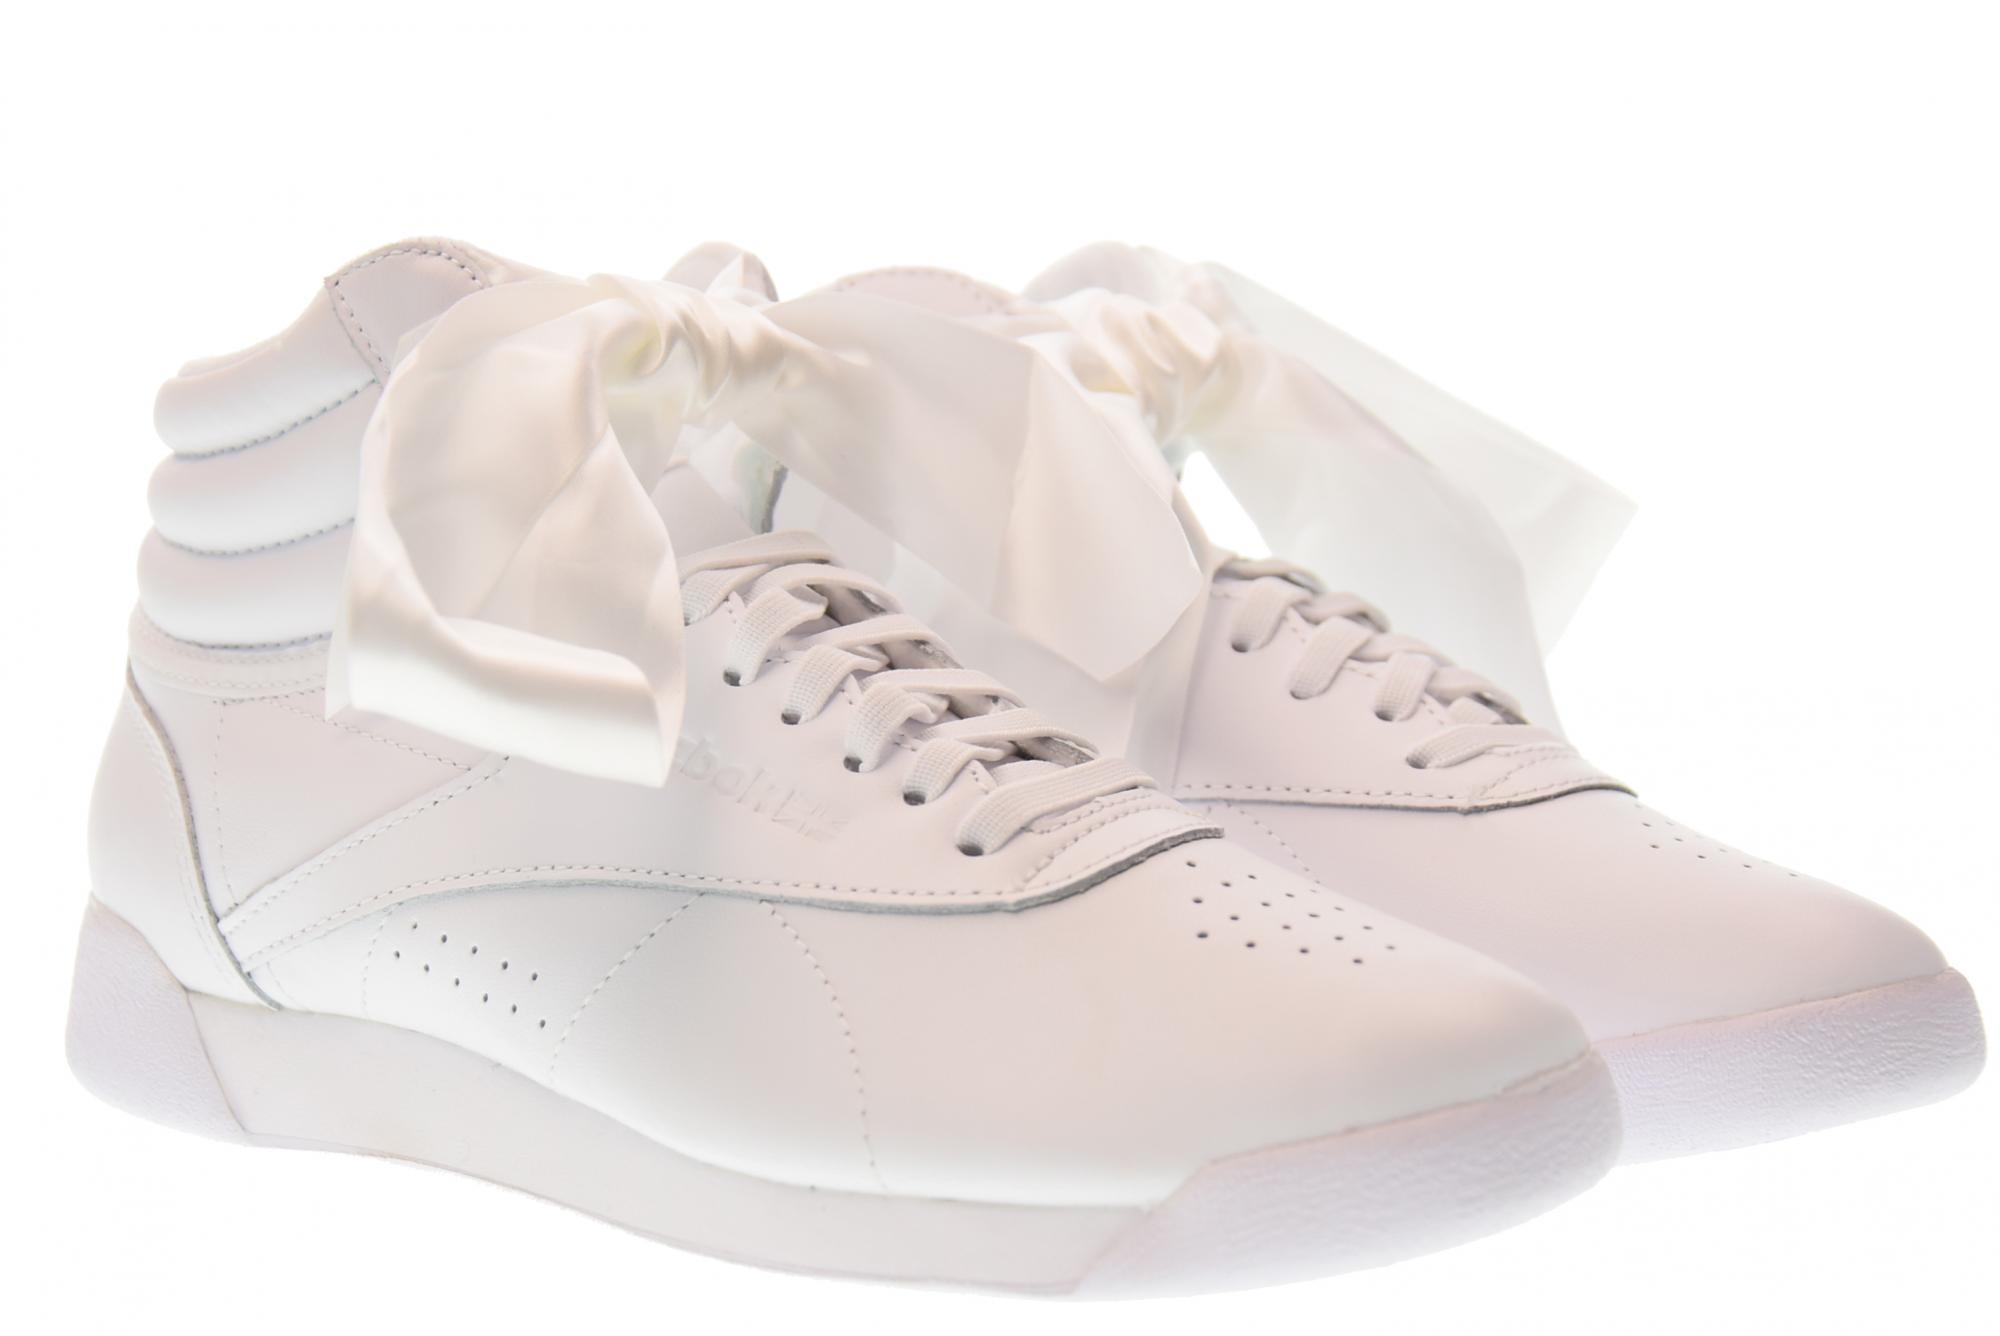 3c5e68ecfe255 Details about Reebok P18u shoes woman high sneakers CM8903 F / S HI SATIN  BOW